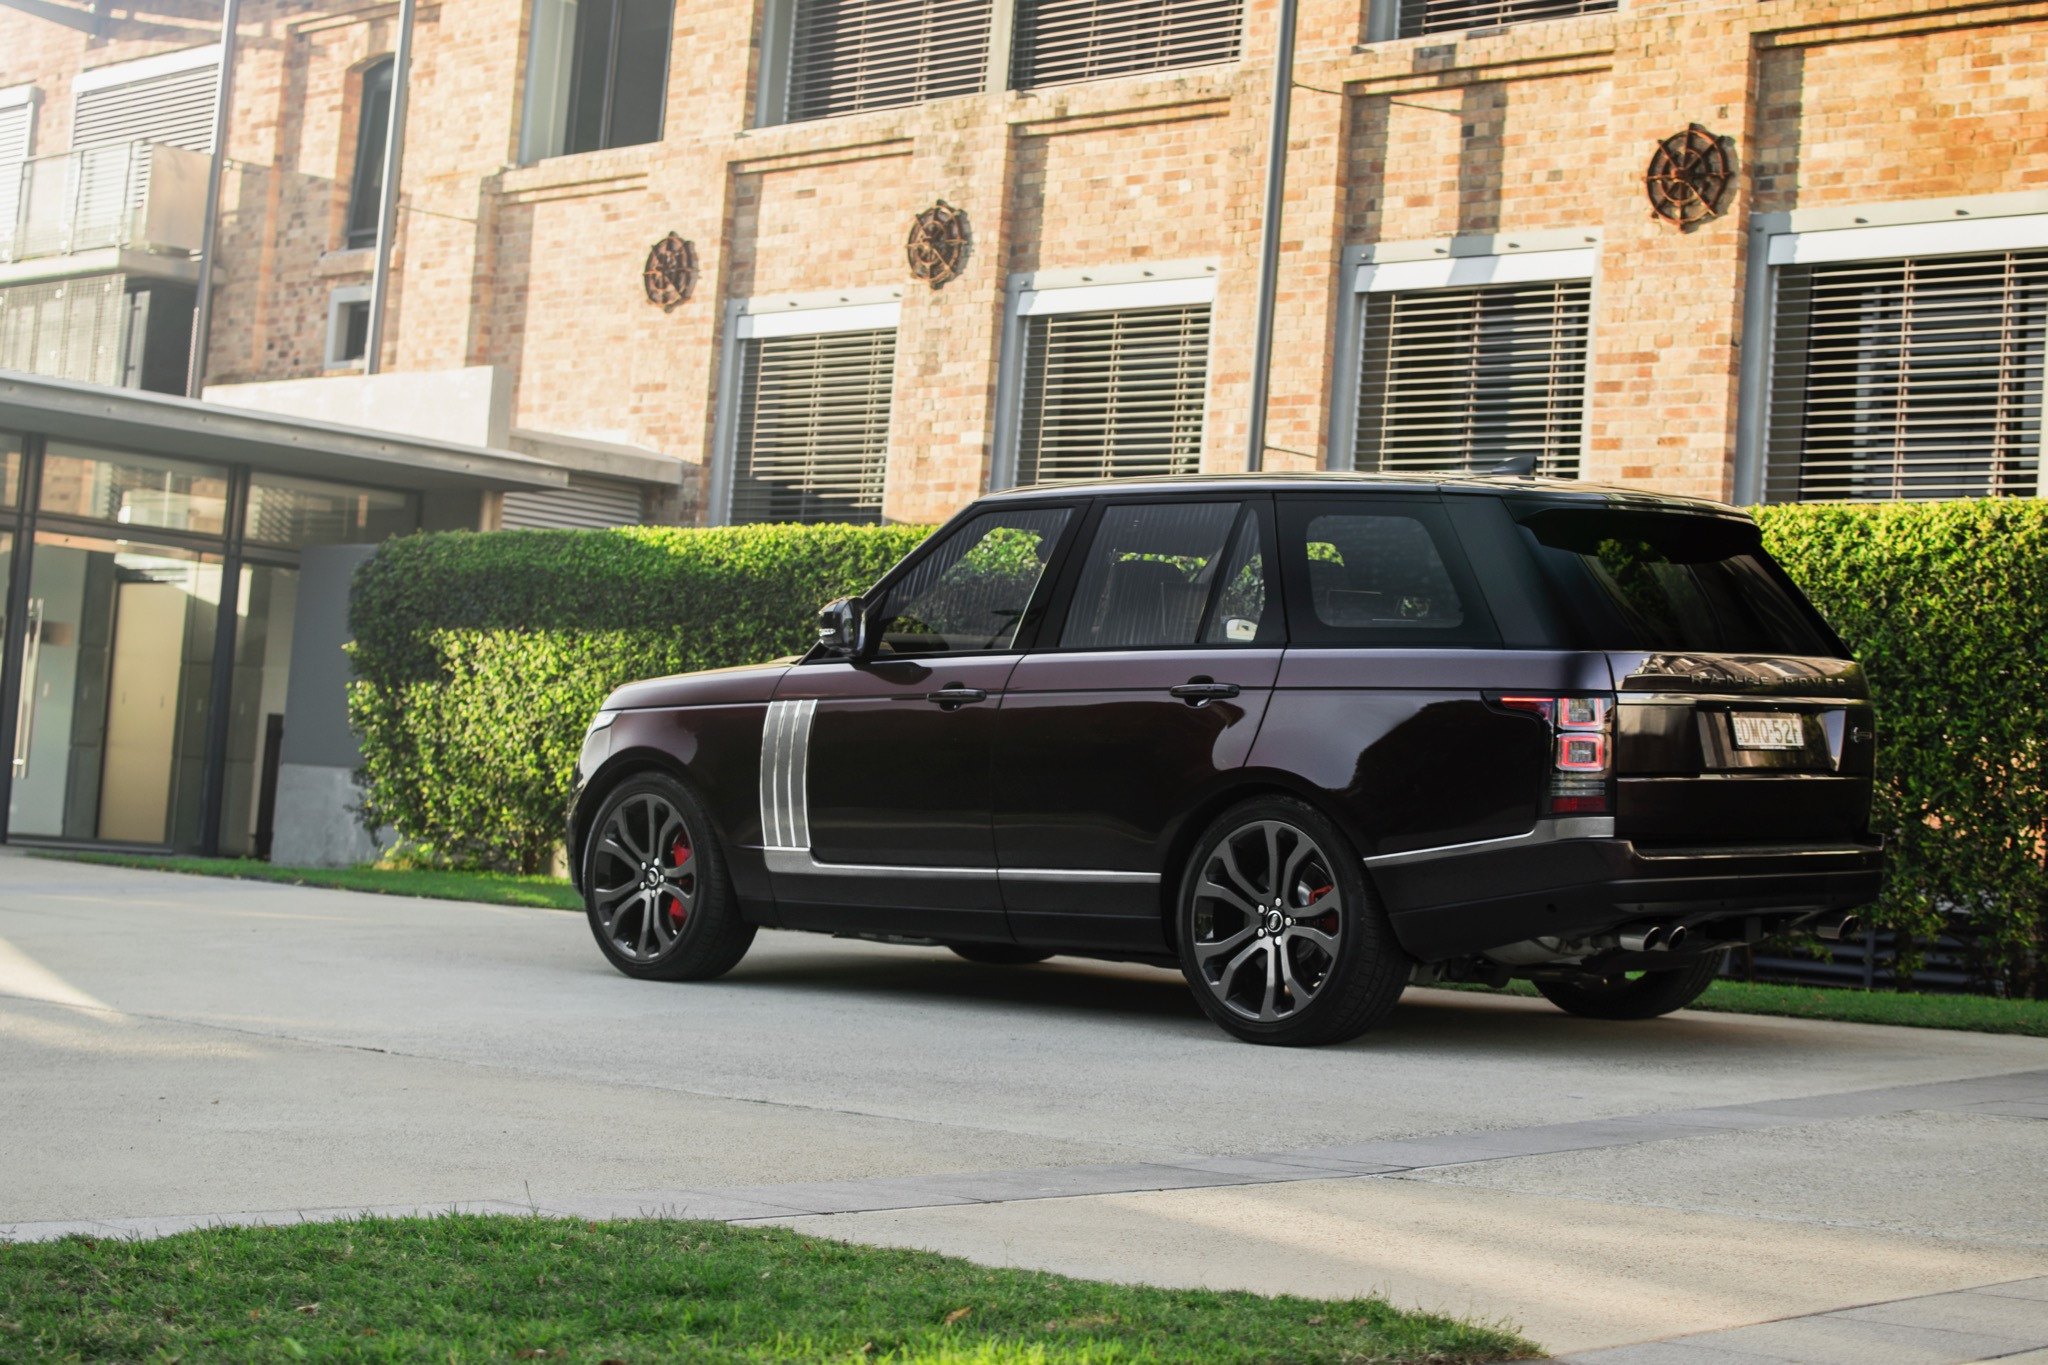 2017 range rover sv autobiography pictures to pin on pinterest pinsdaddy. Black Bedroom Furniture Sets. Home Design Ideas